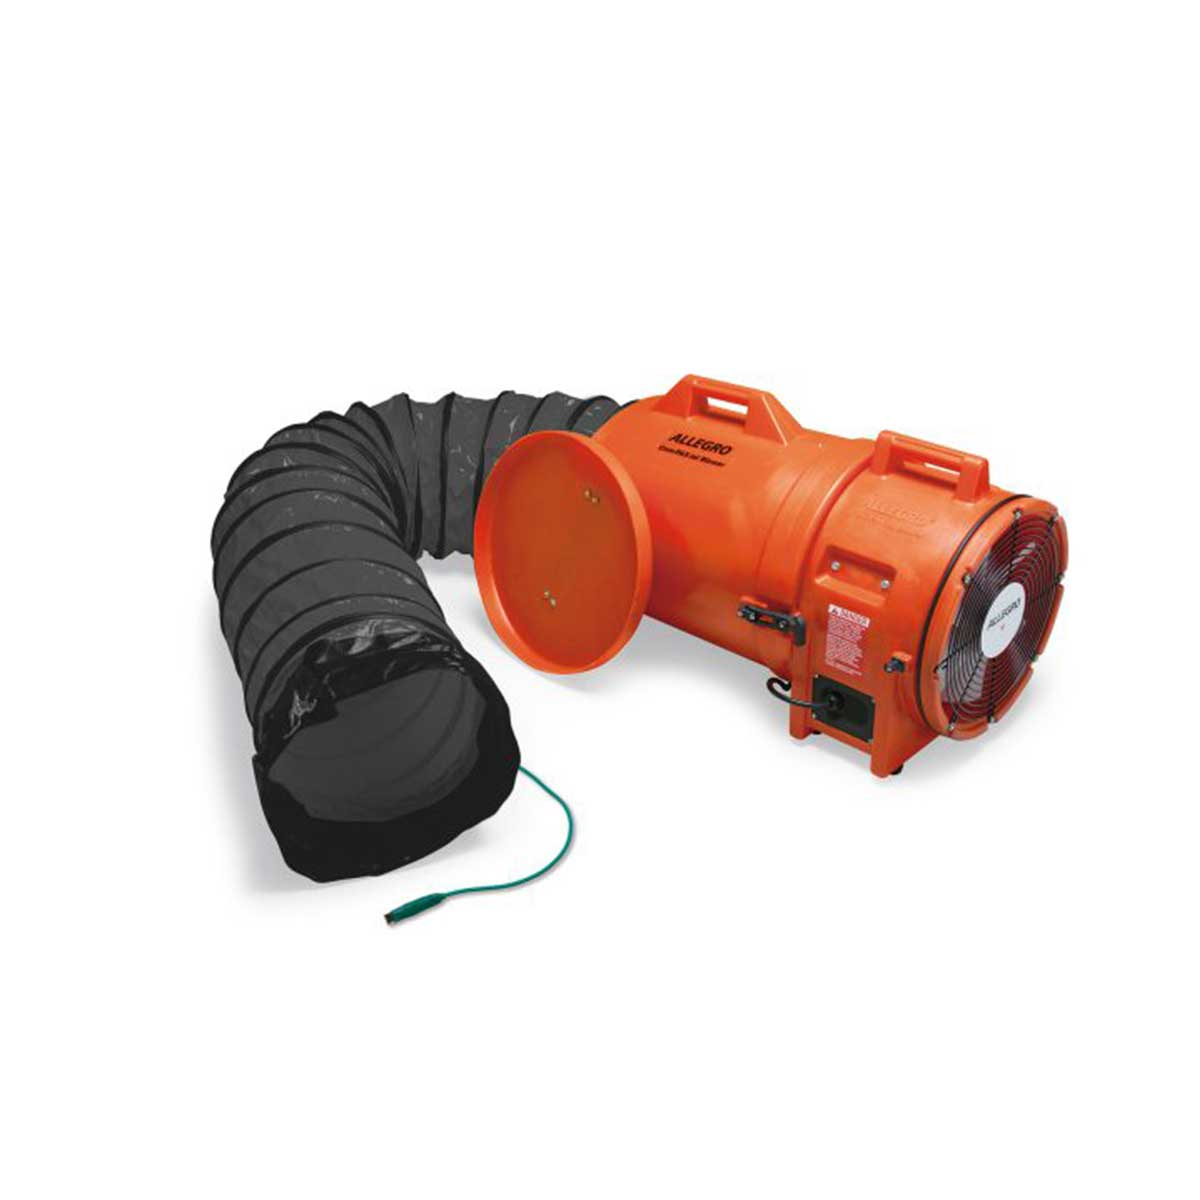 12″ Axial Explosion-Proof (EX) Plastic Blower w/ Canister & 25′ Ducting. Part: ALL-9548‐25. Pkg: 1